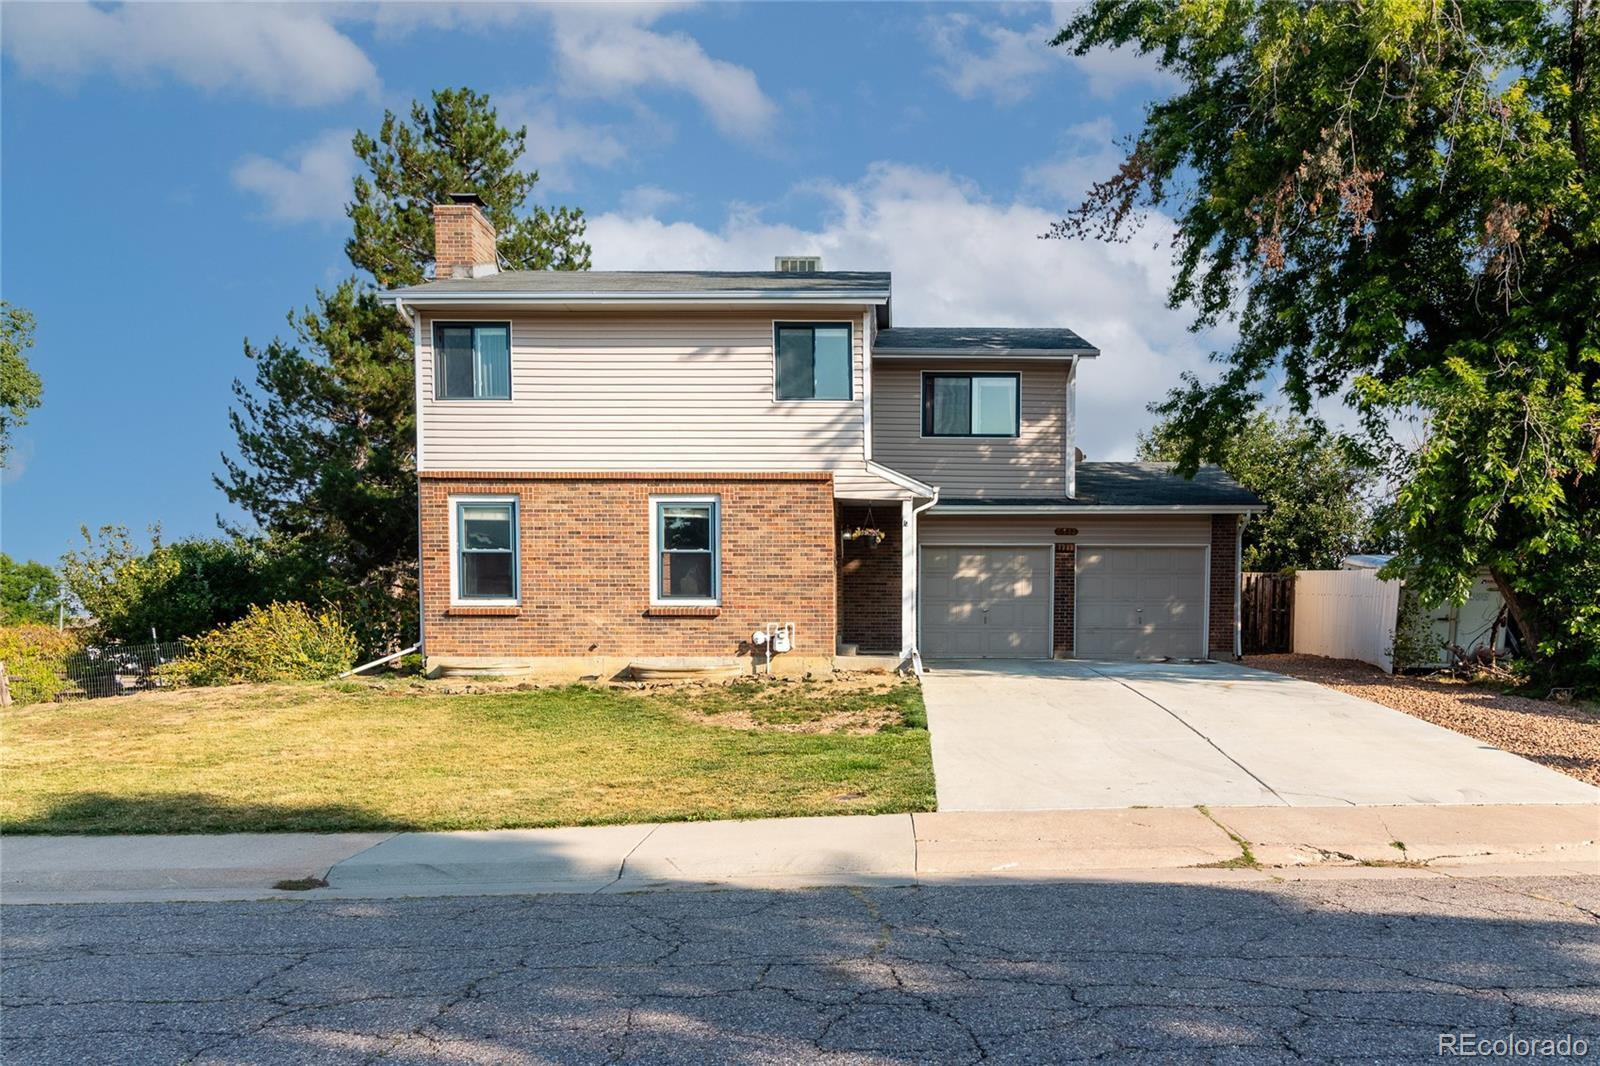 7712 S Independence Way, Littleton, CO 80128 - #: 5056755